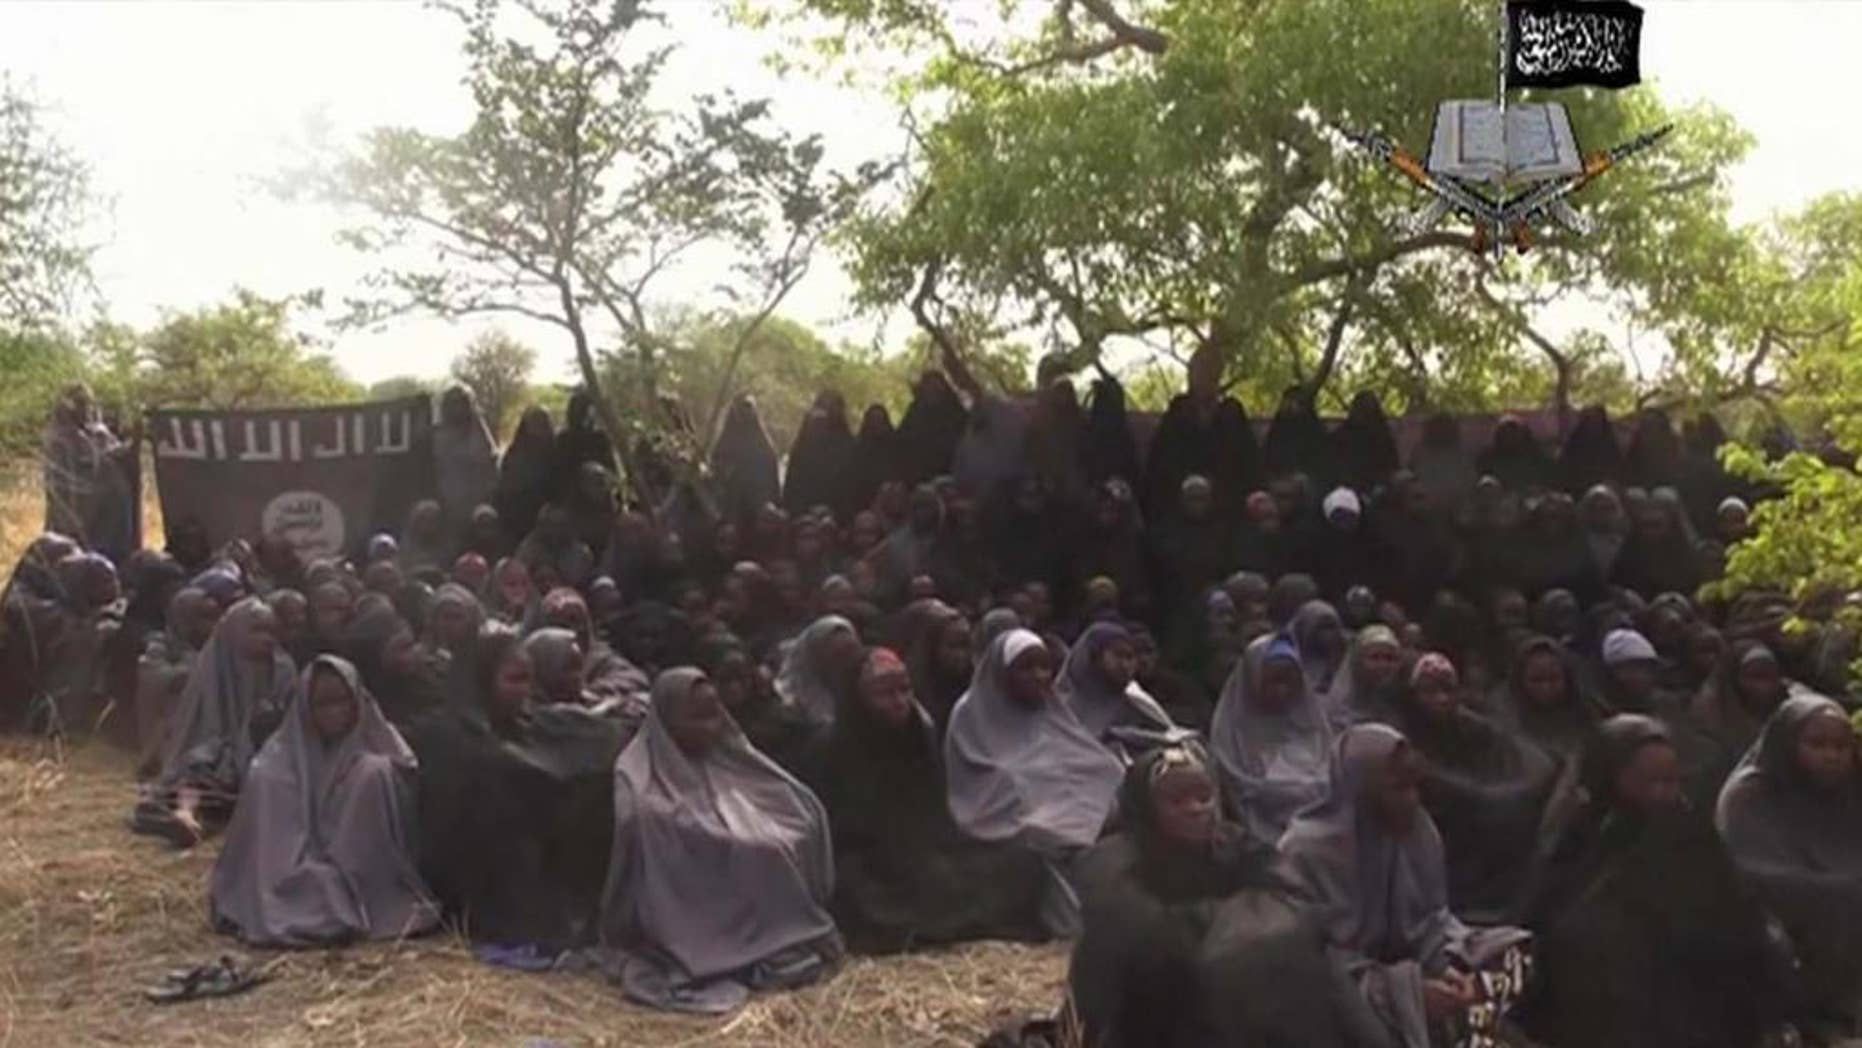 FILE-In this file photo taken from video released by Nigeria's Boko Haram terrorist network, Monday May 12, 2014, shows missing girls abducted from the northeastern town of Chibok. A teenage who surrendered before carrying out a suicide bombing attack in northern Cameroon has told authorities she was one of the 276 girls abducted from a Nigerian boarding school by Islamic extremists nearly two years ago, authorities said Saturday, March 26, 2016. (AP Photo)